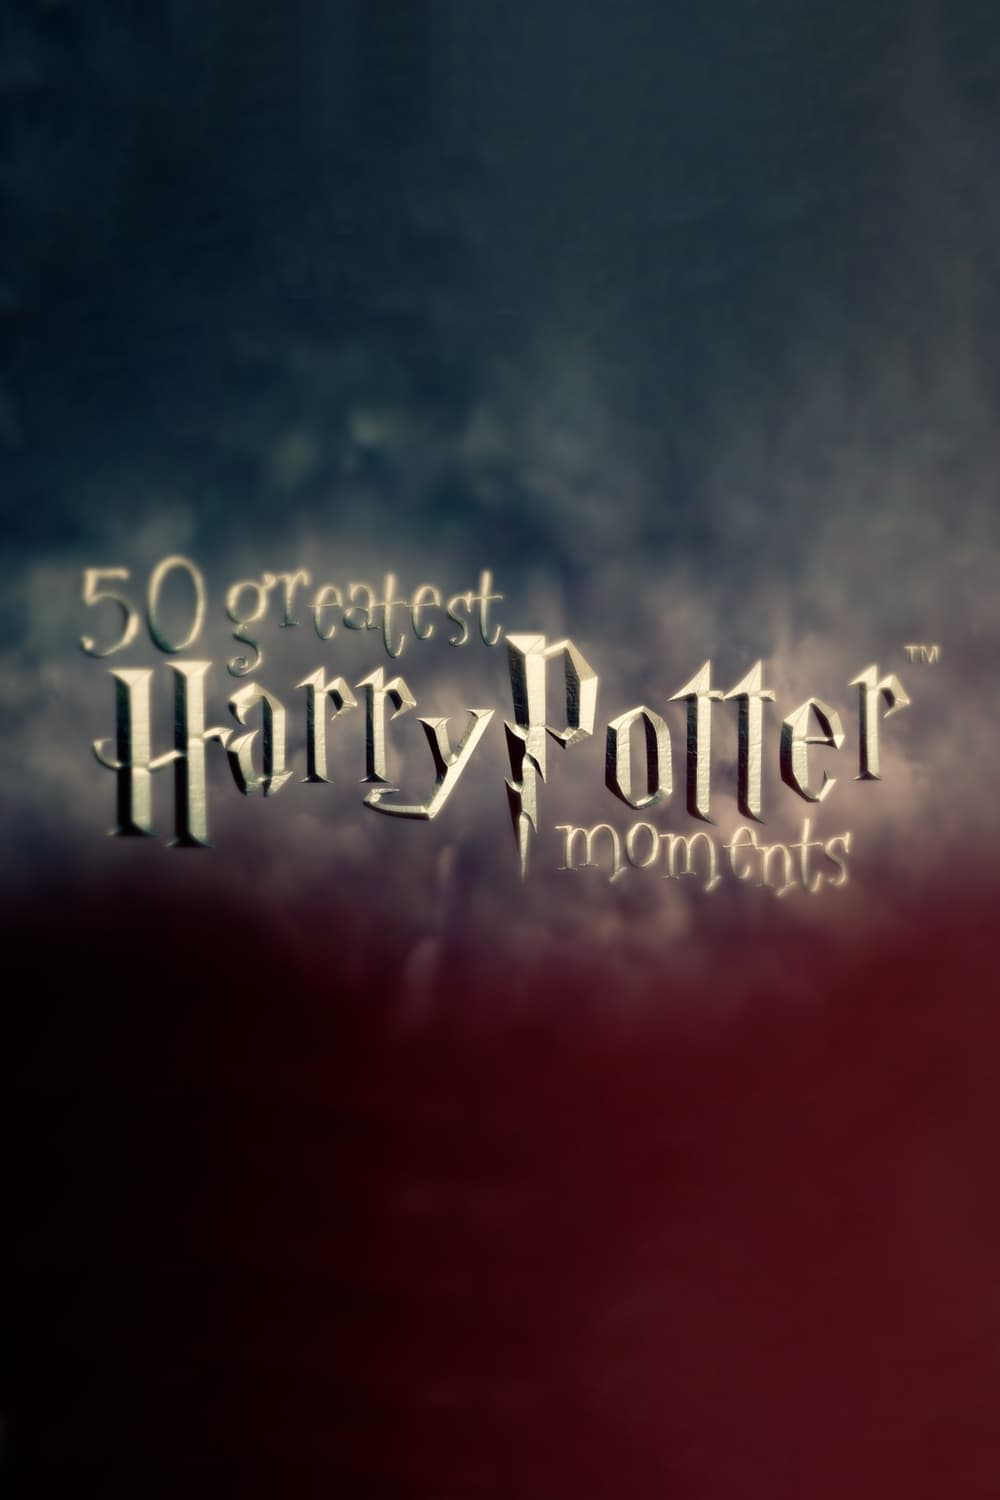 50 Greatest Harry Potter Moments (2011)